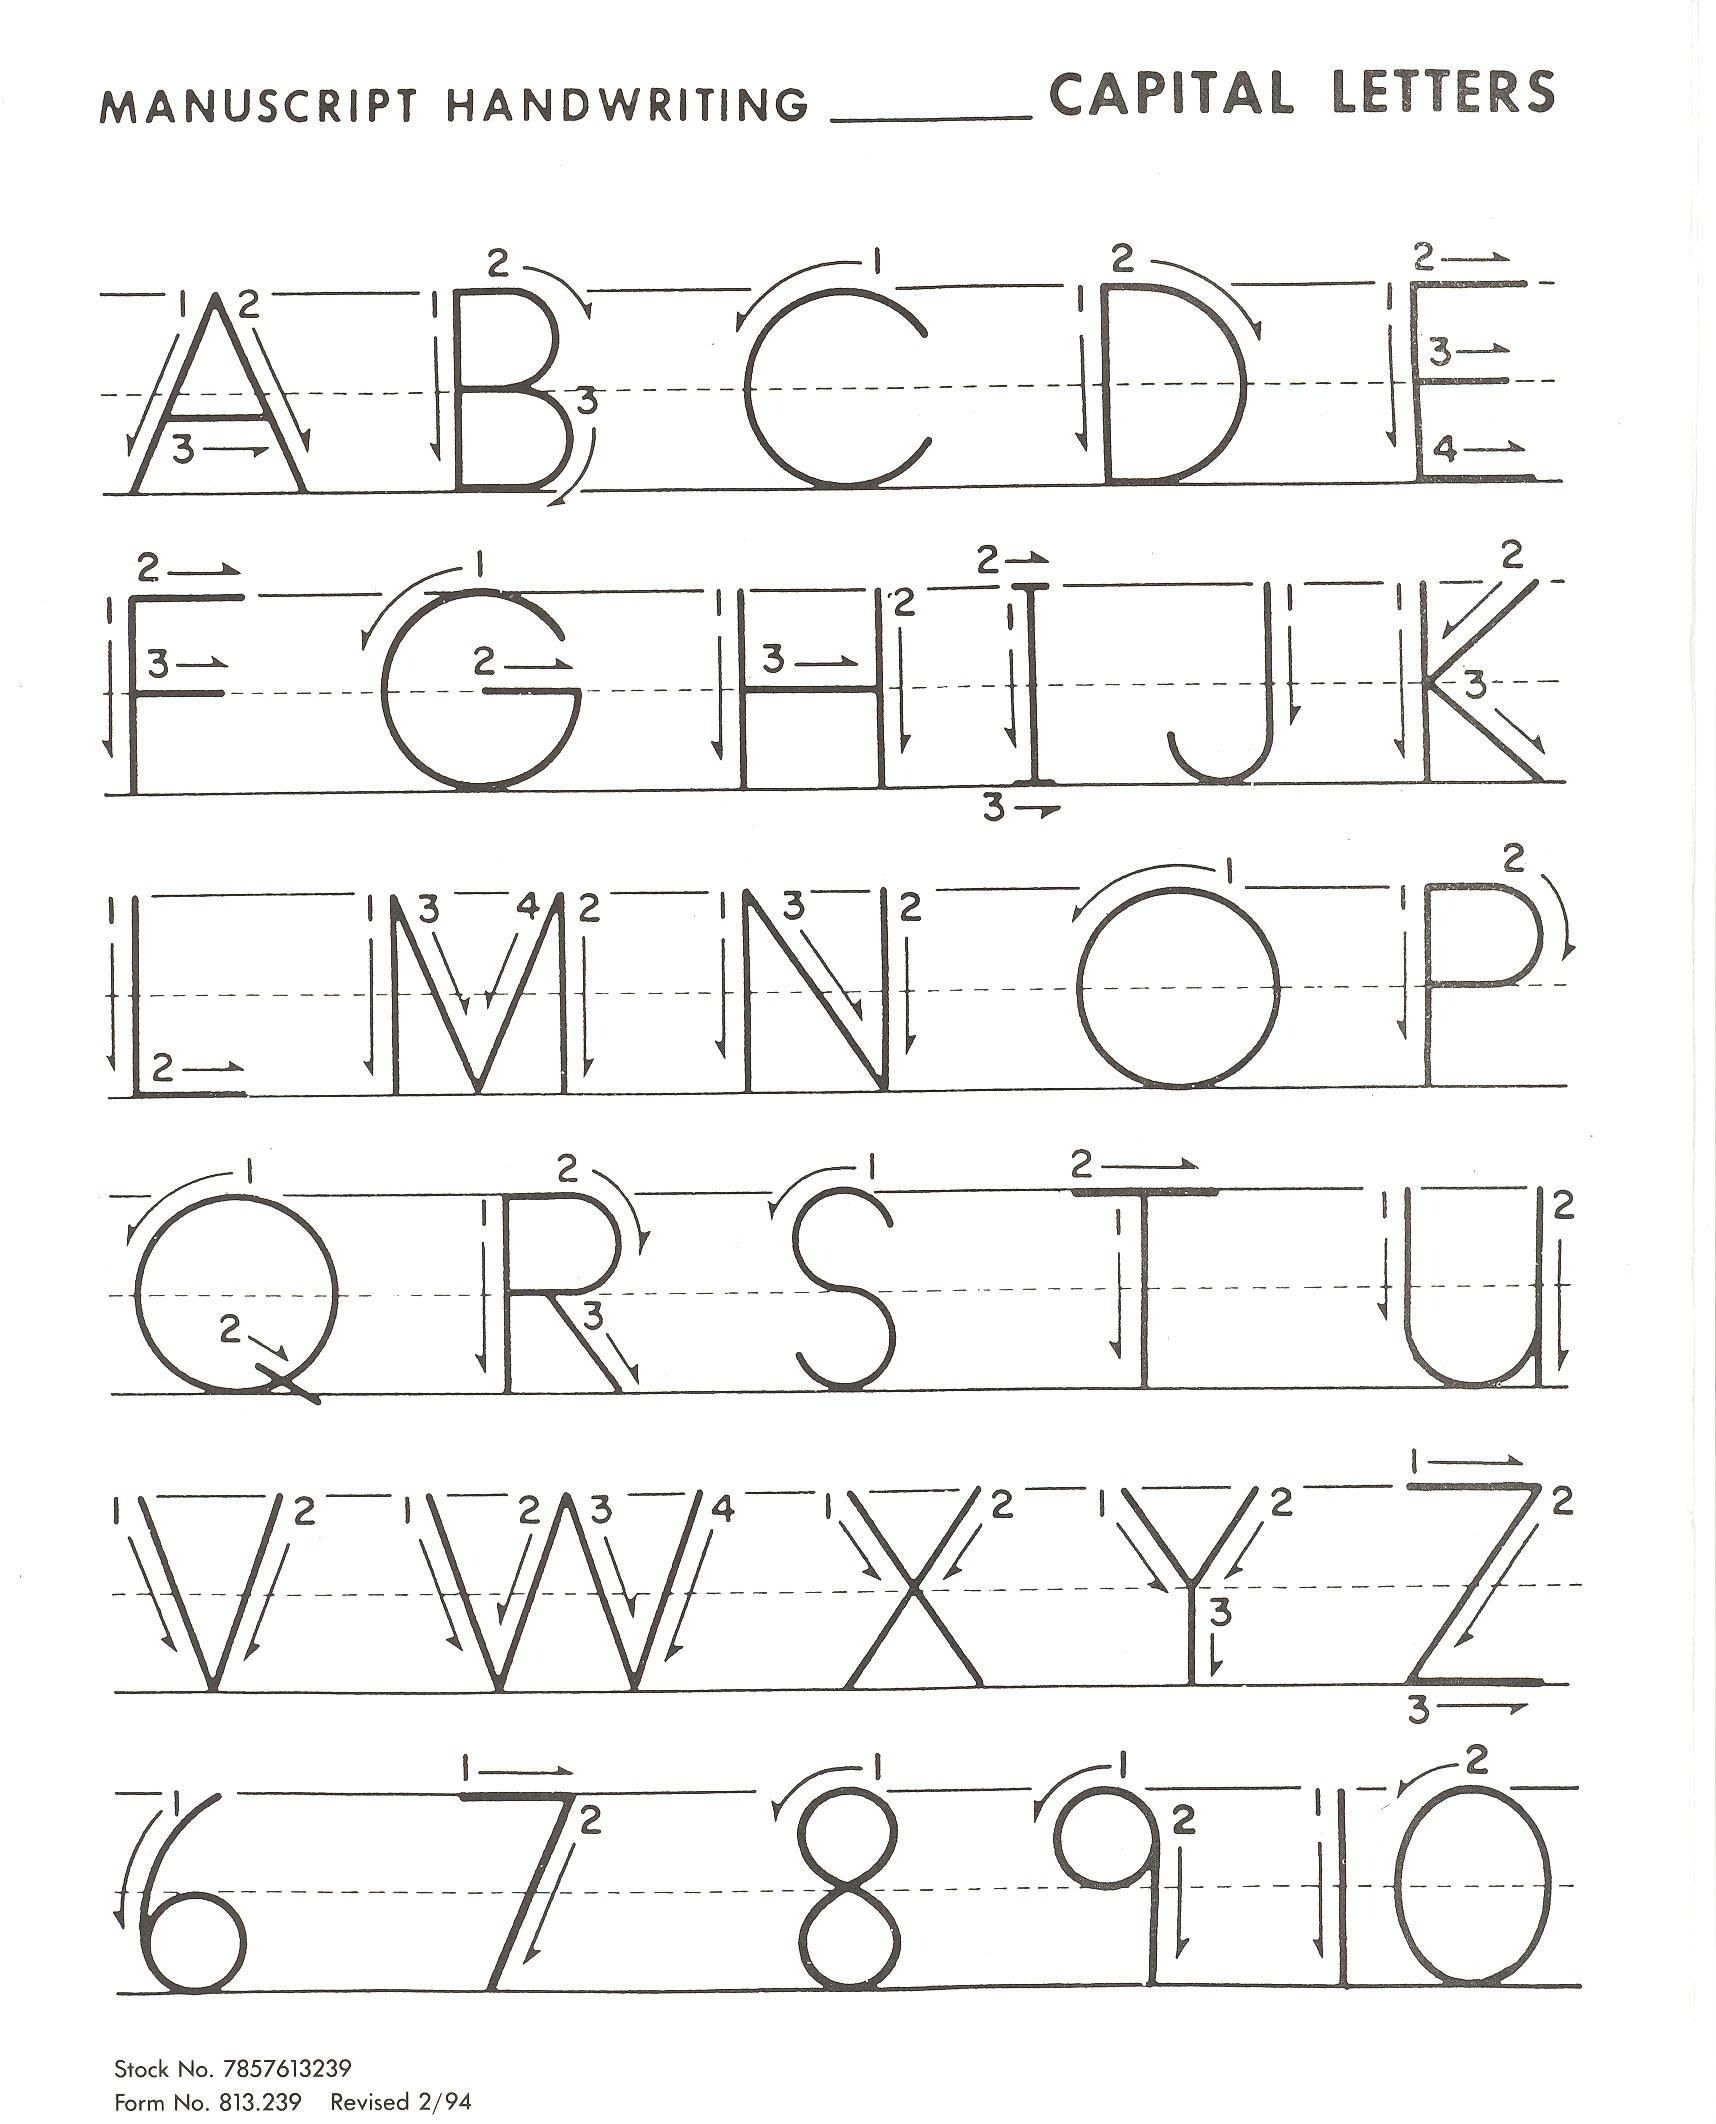 Worksheets Letter Practice letter practice for basic handwriting kiddo shelter kids shelter